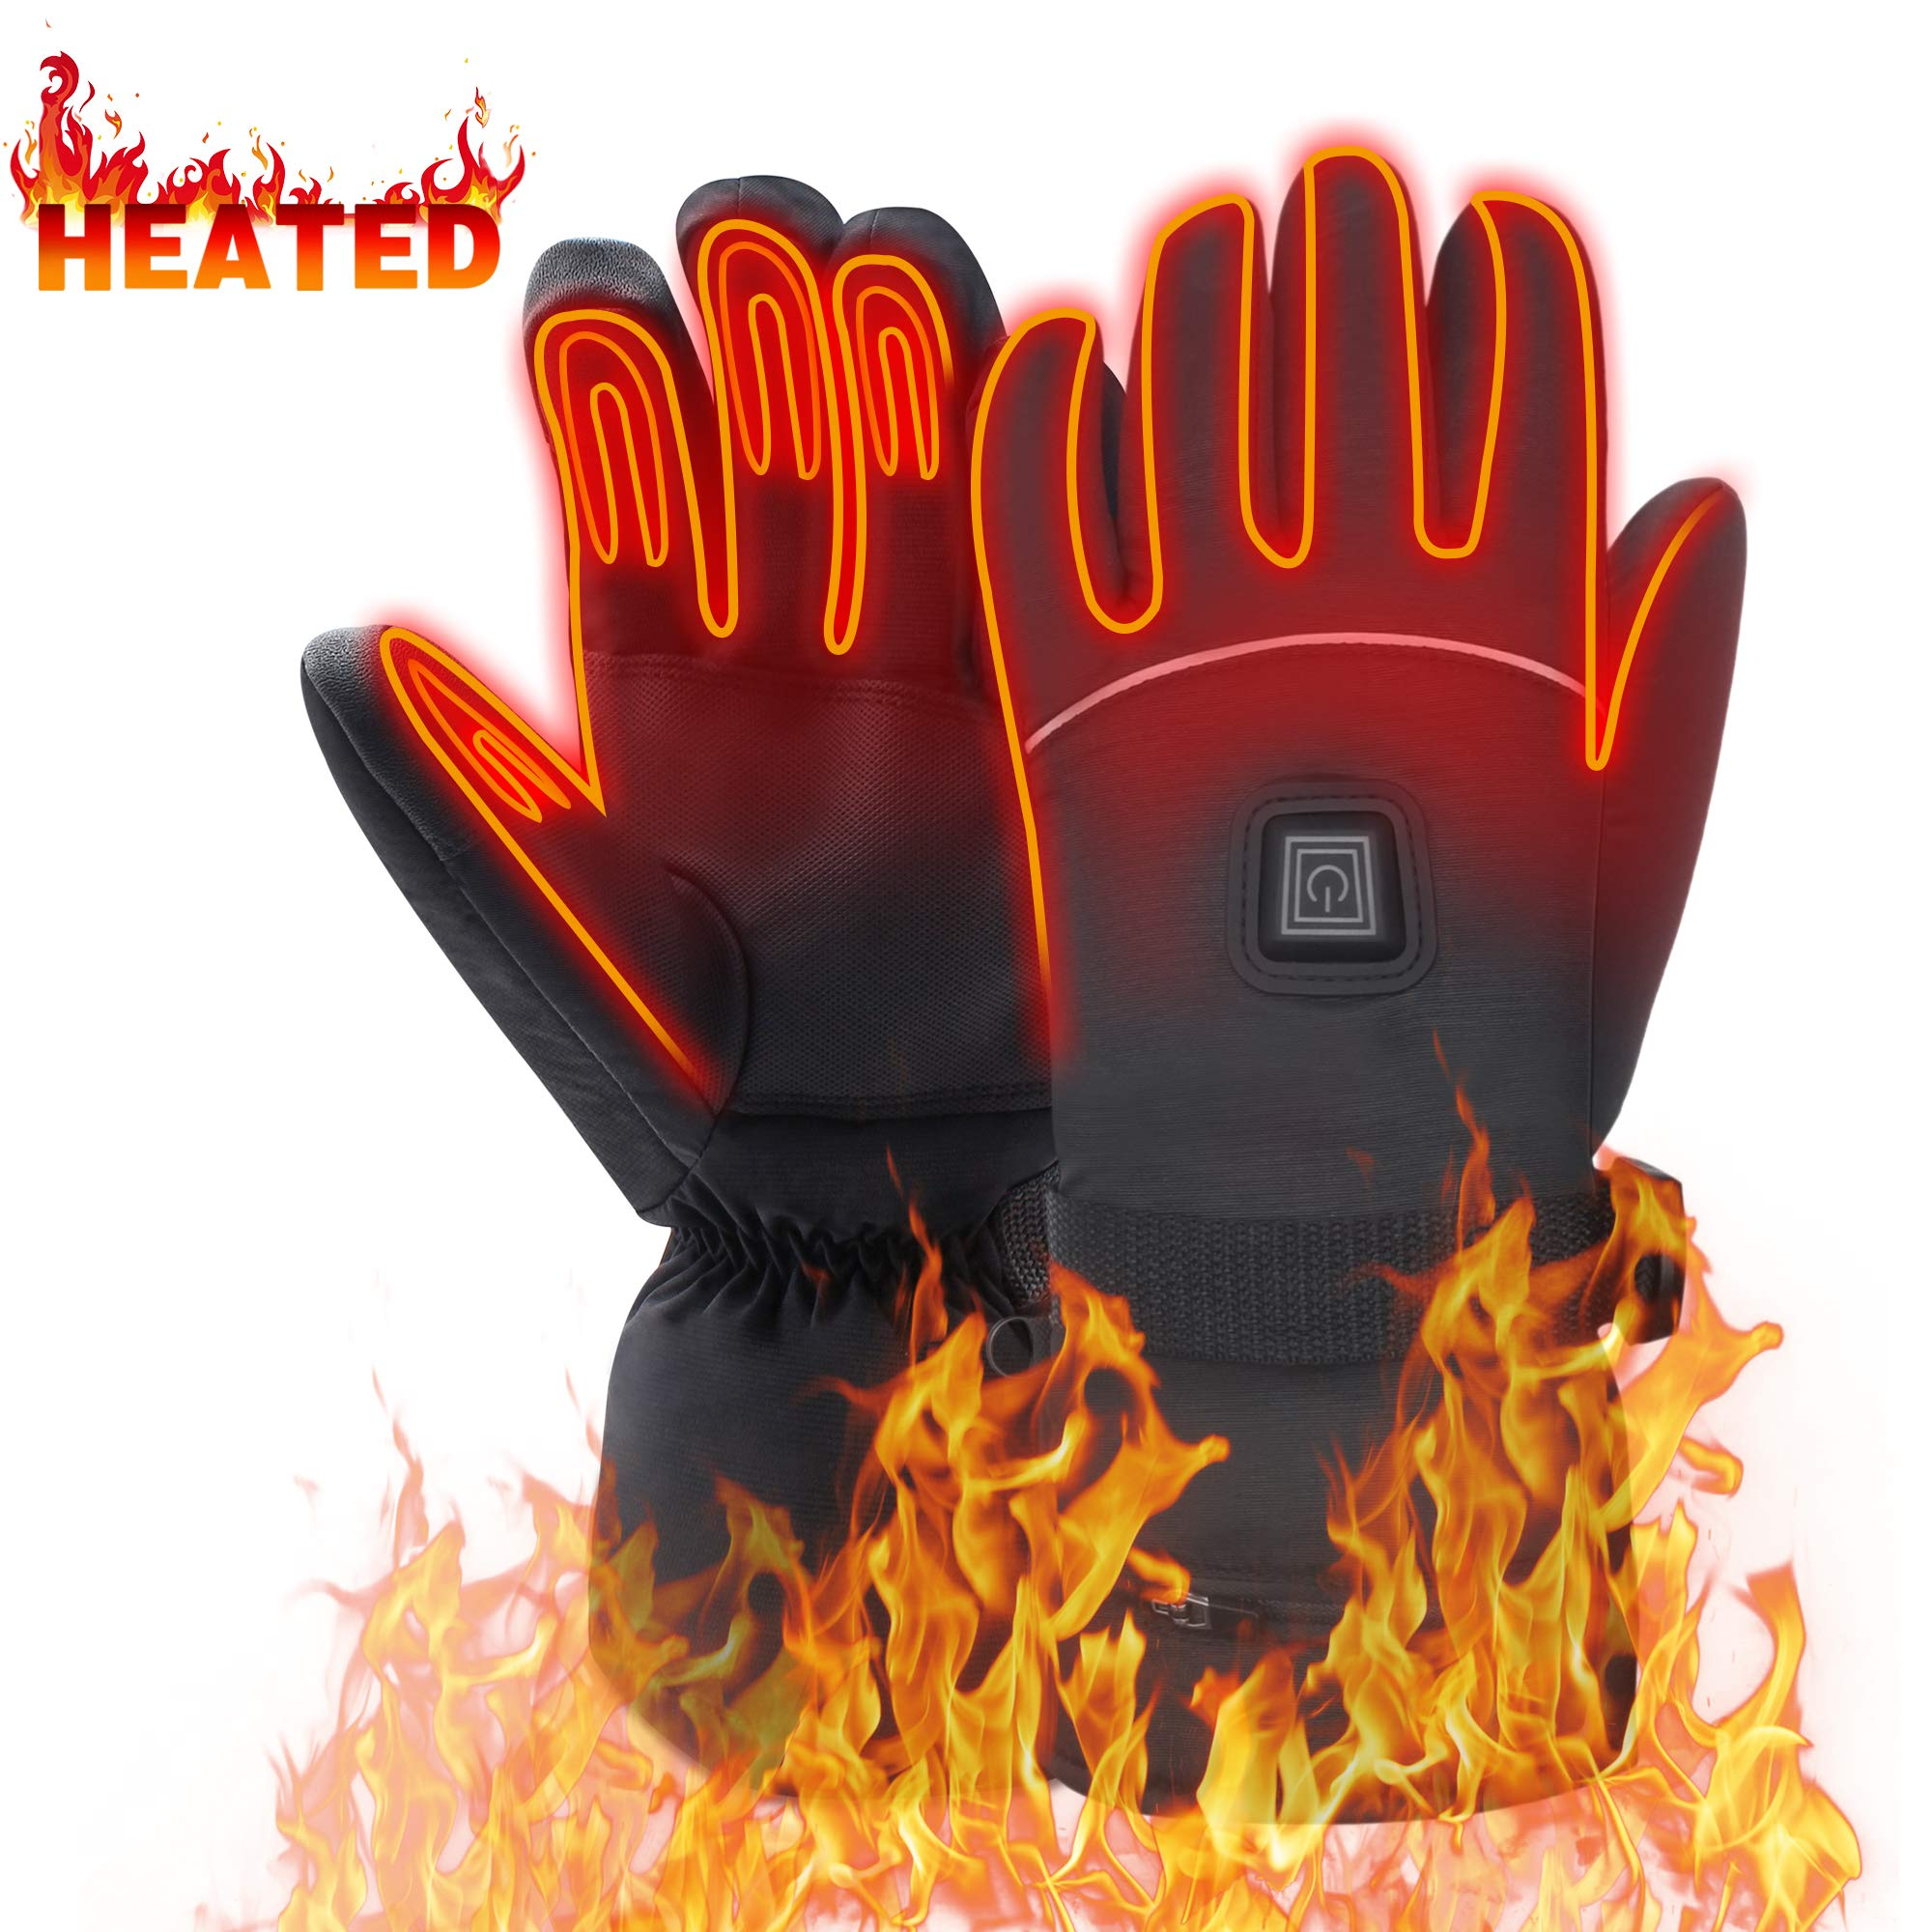 Heated Gloves for Men Woman Hand Warmers Electric Btteries Gloves Motorcycle Gloves with 7.4 V Rechargeable Batteries Heating Gloves for Hunting Shoveling Snowballs Riding (XL) by MMlove